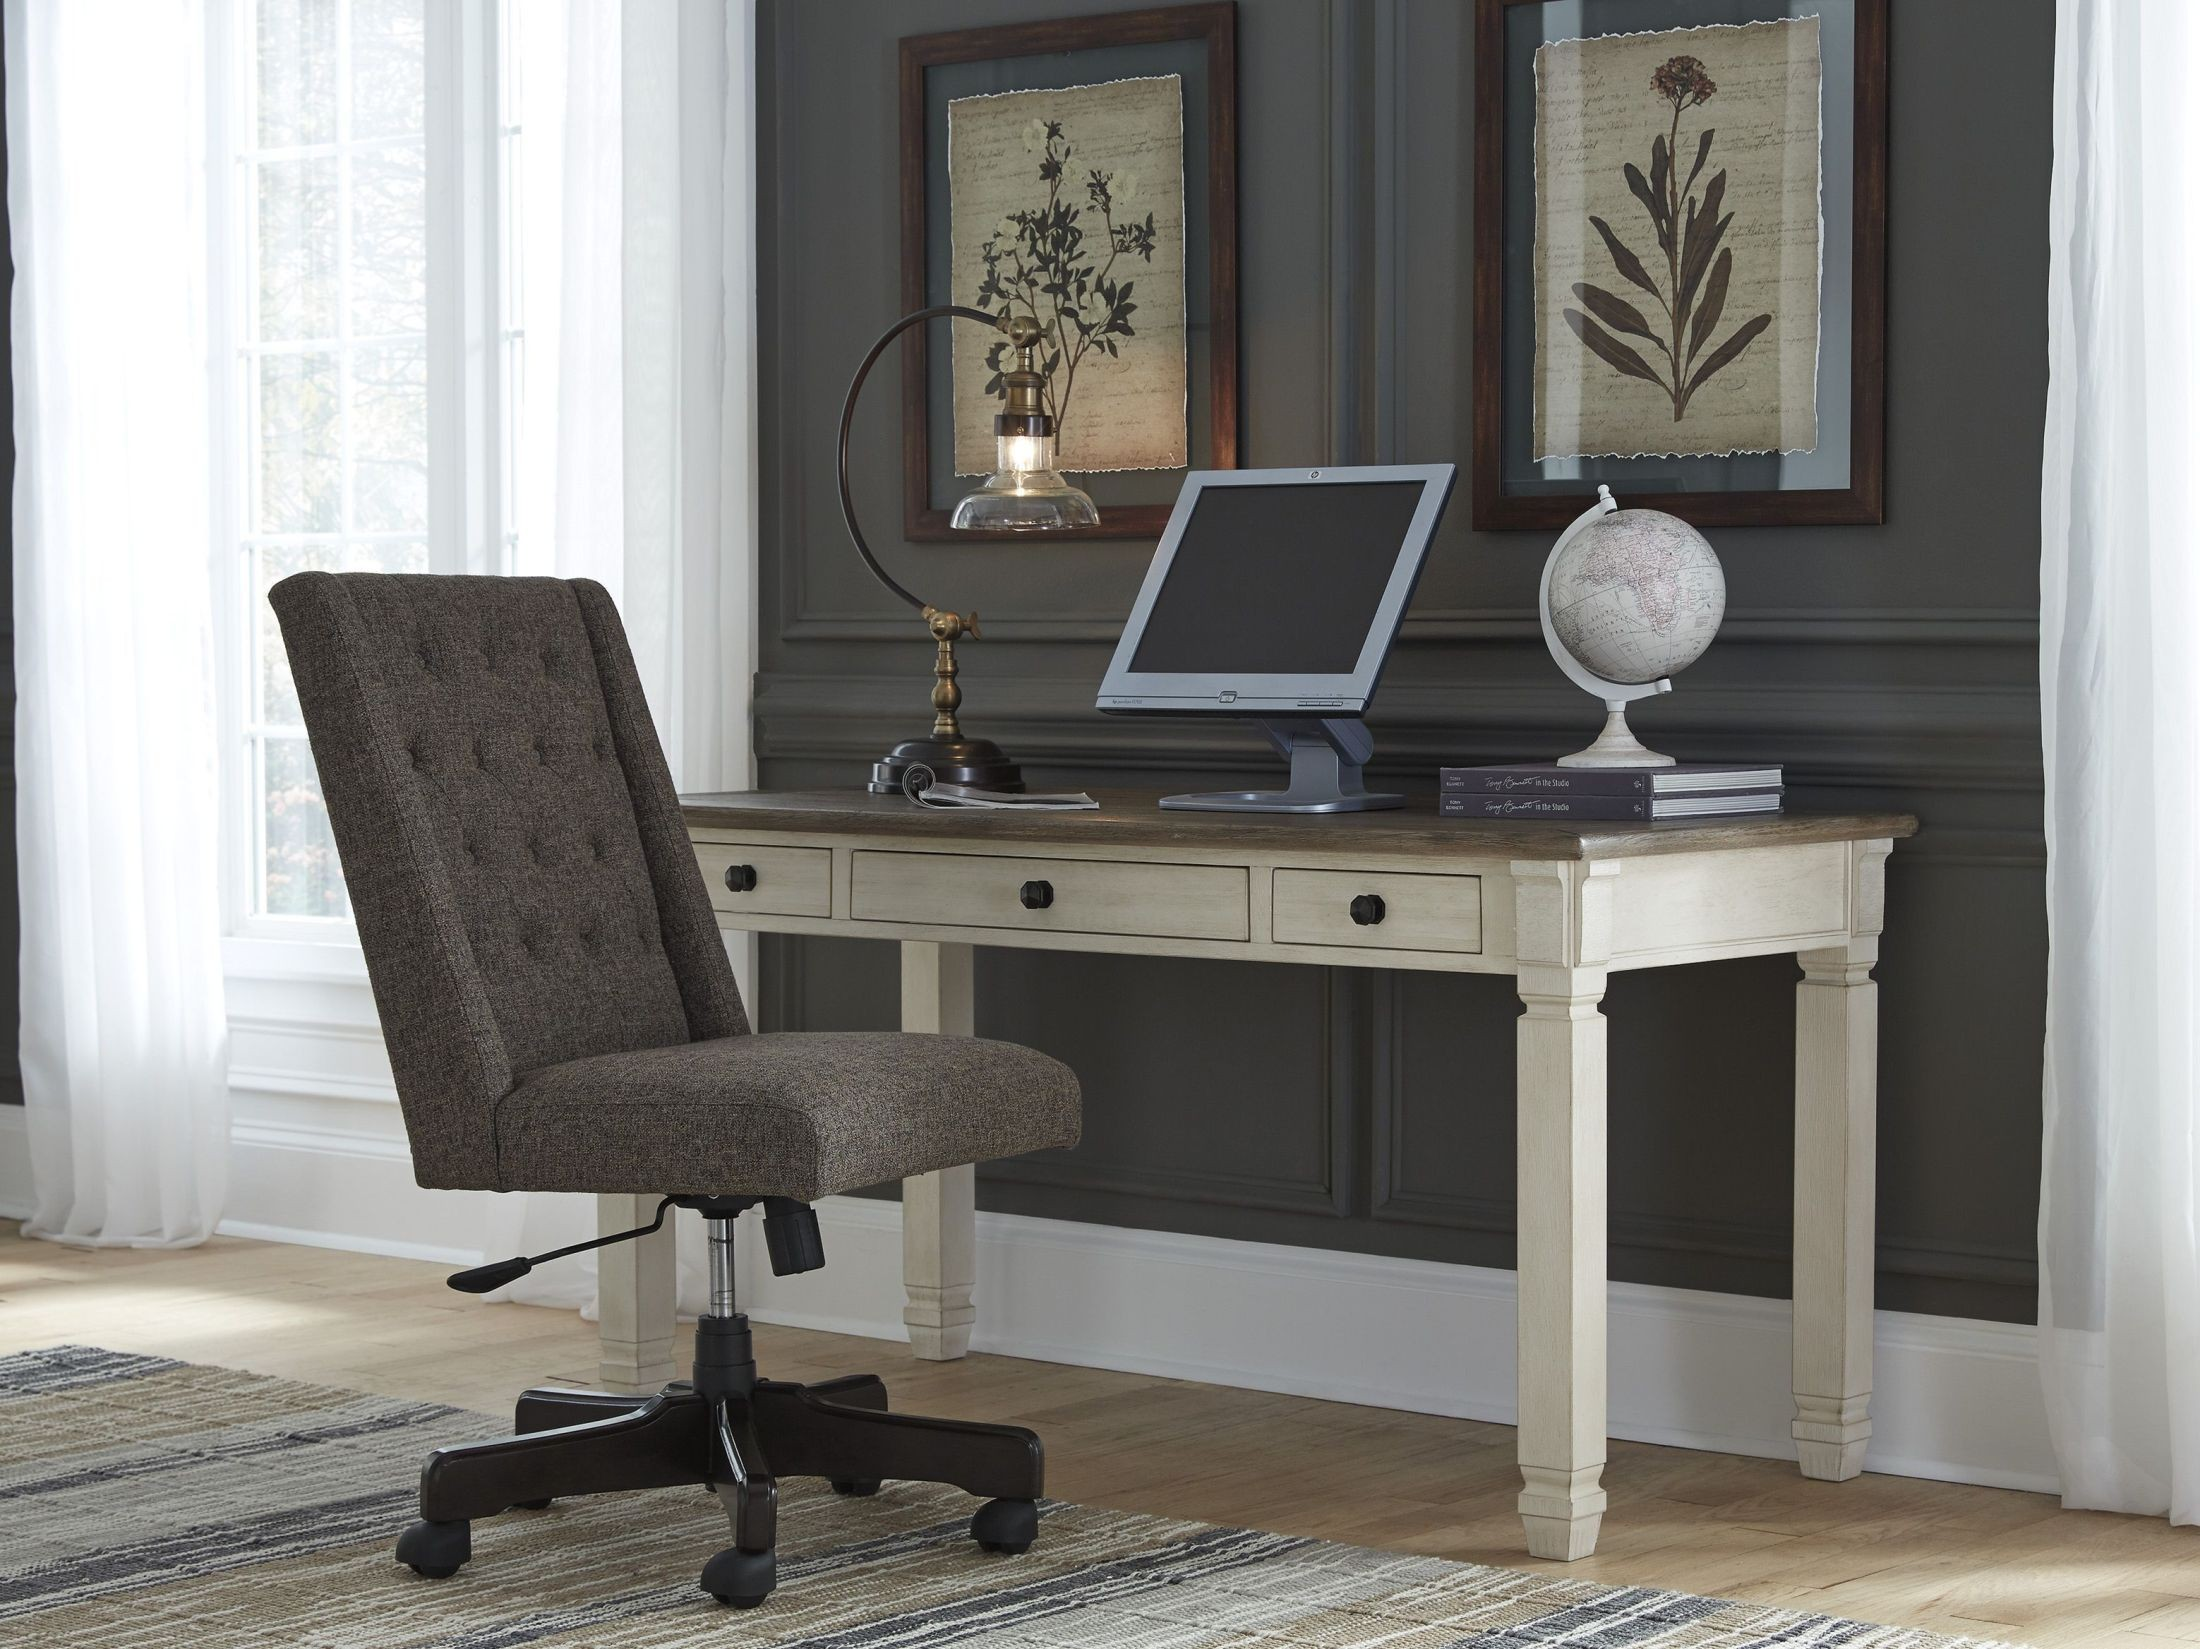 Bolanburg Two-tone Home Office Set Media Gallery 2